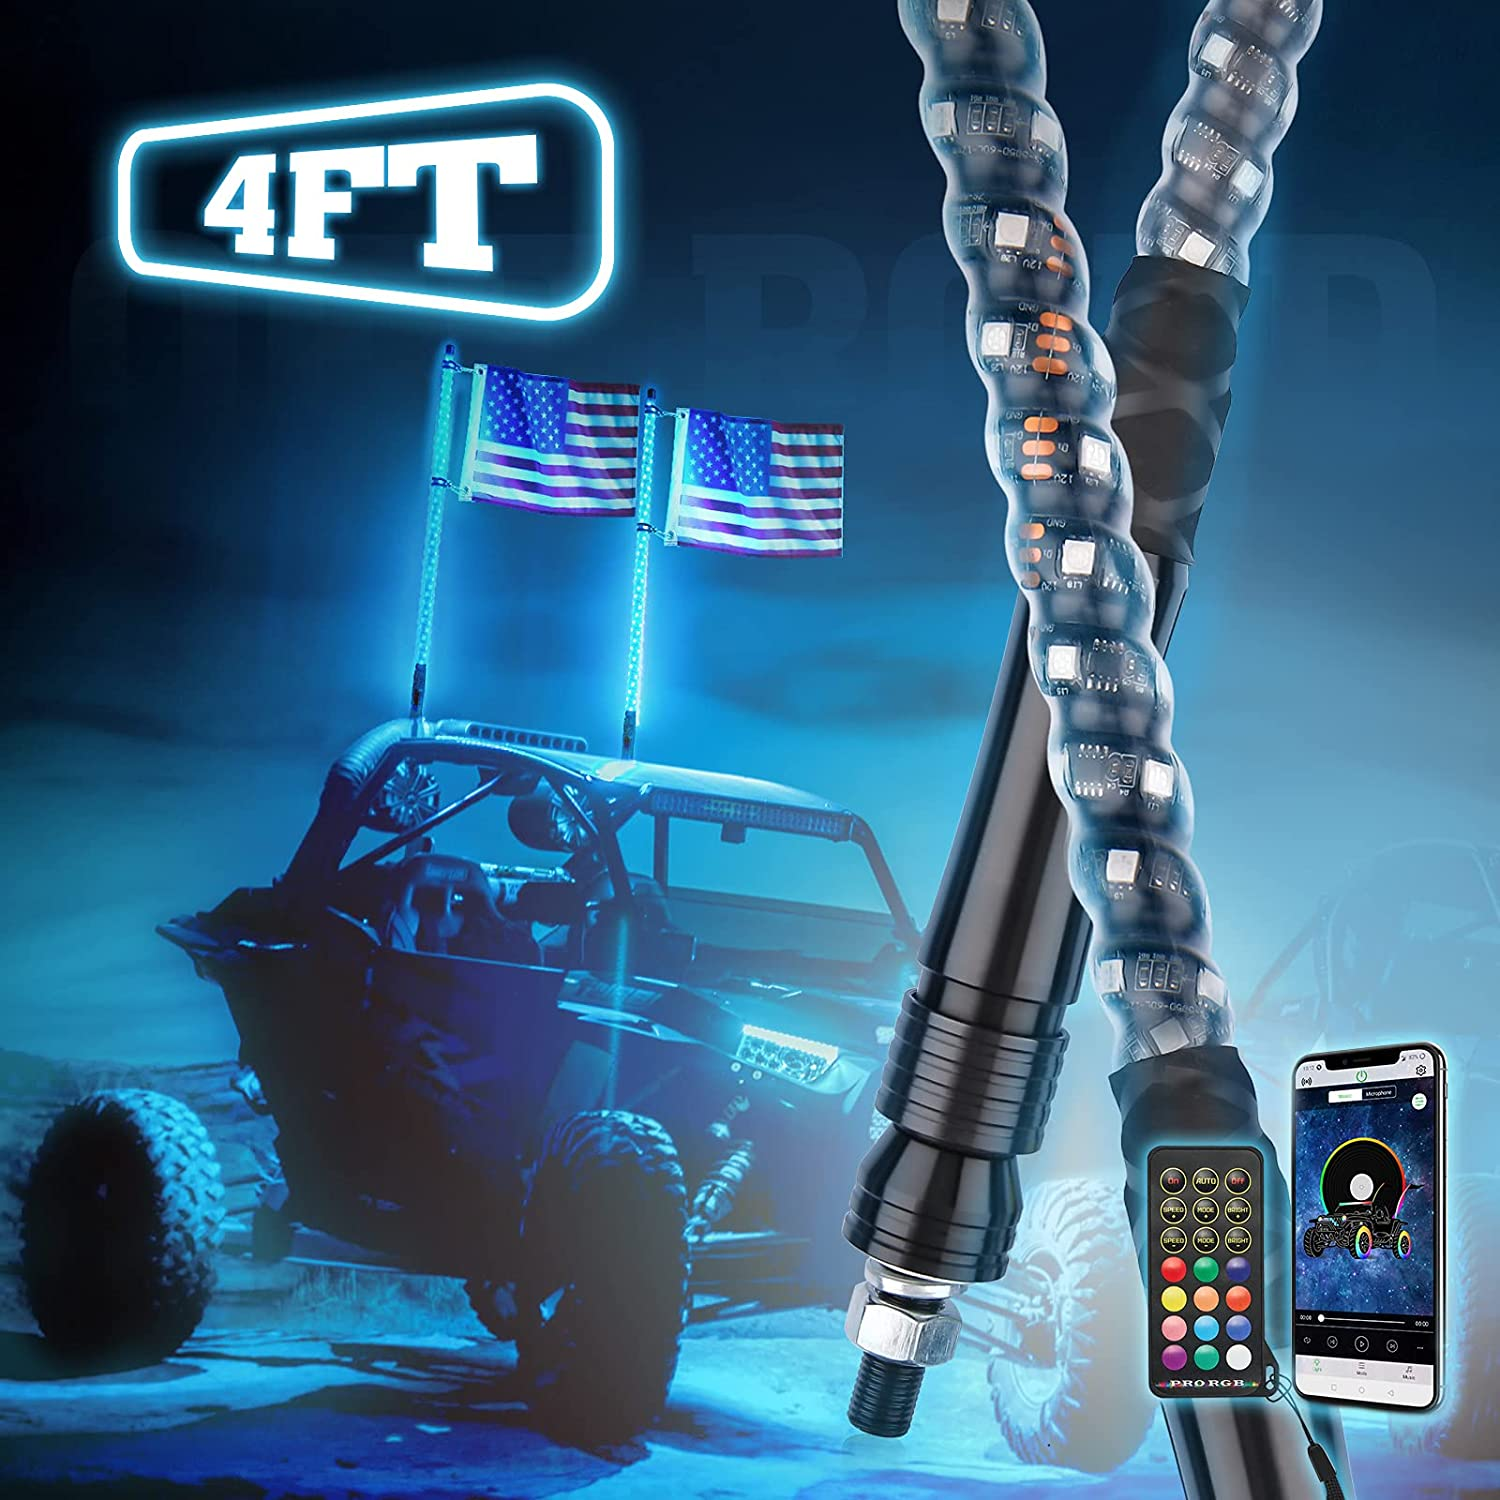 Kemimoto Limited Special Price LED Whip Lights for UTV Bluetooth Flag Virginia Beach Mall and USA ATV with